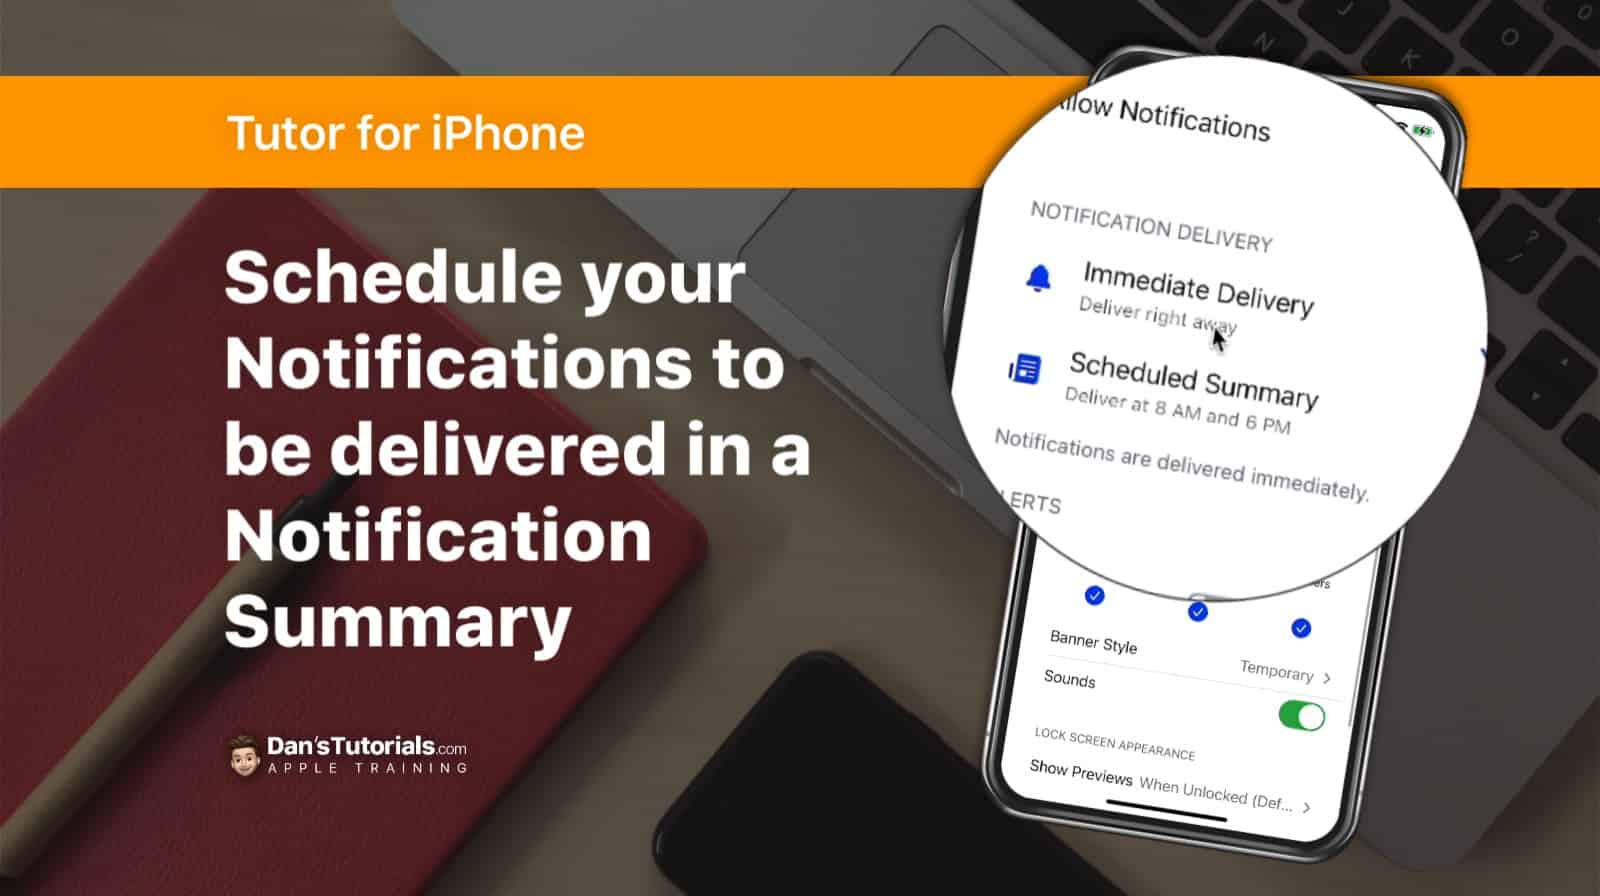 Schedule Notifications to be delivered in a Notification Summary